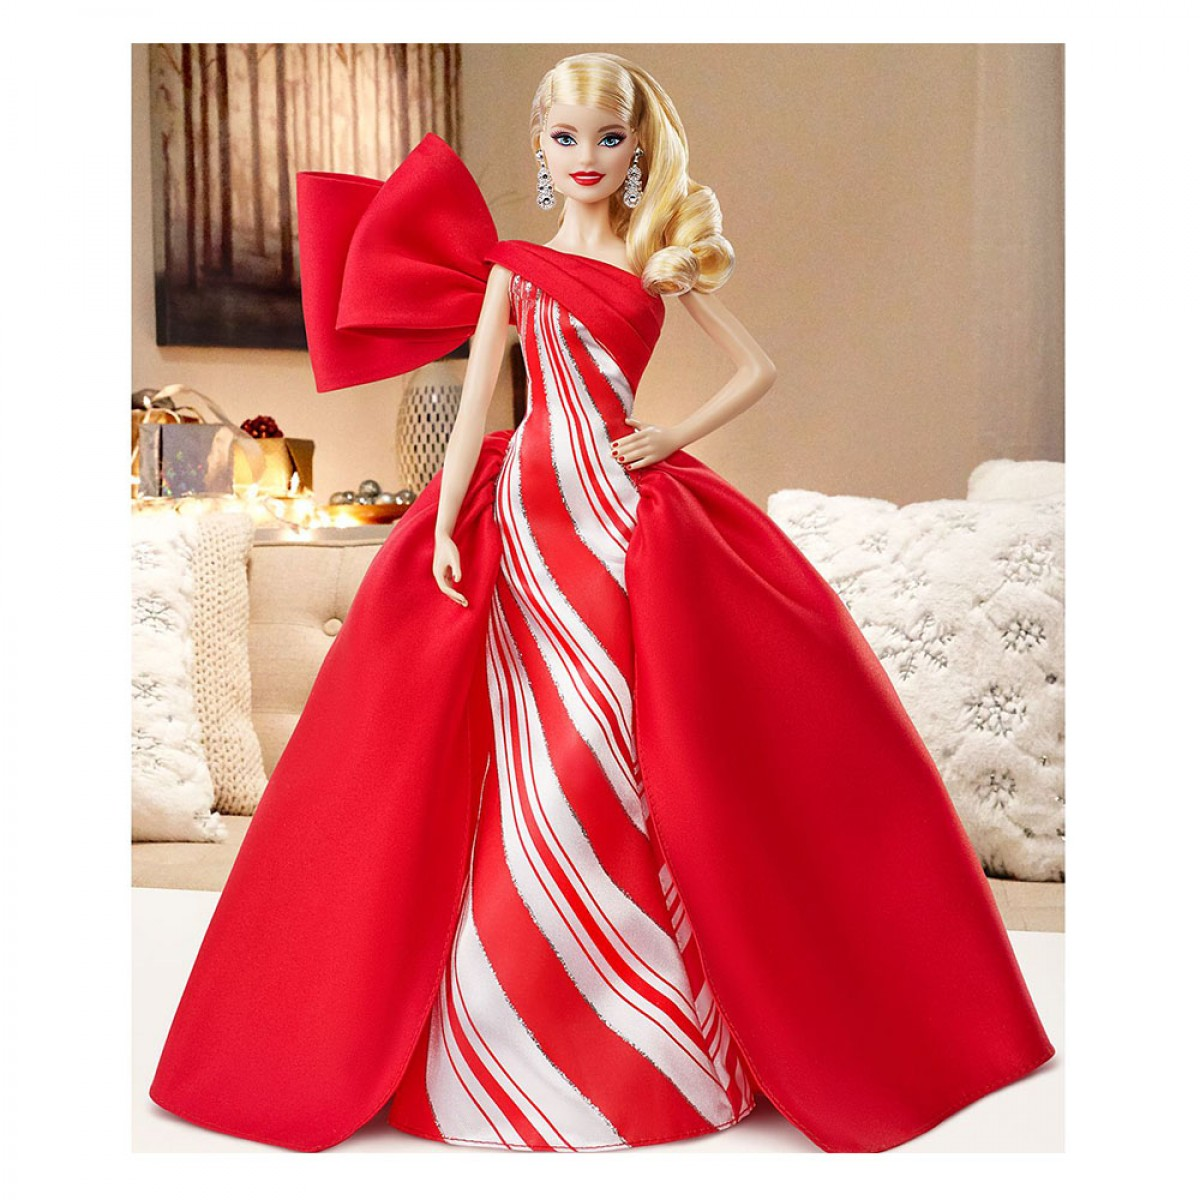 BARBIE HOLIDAY 2019  FXF01